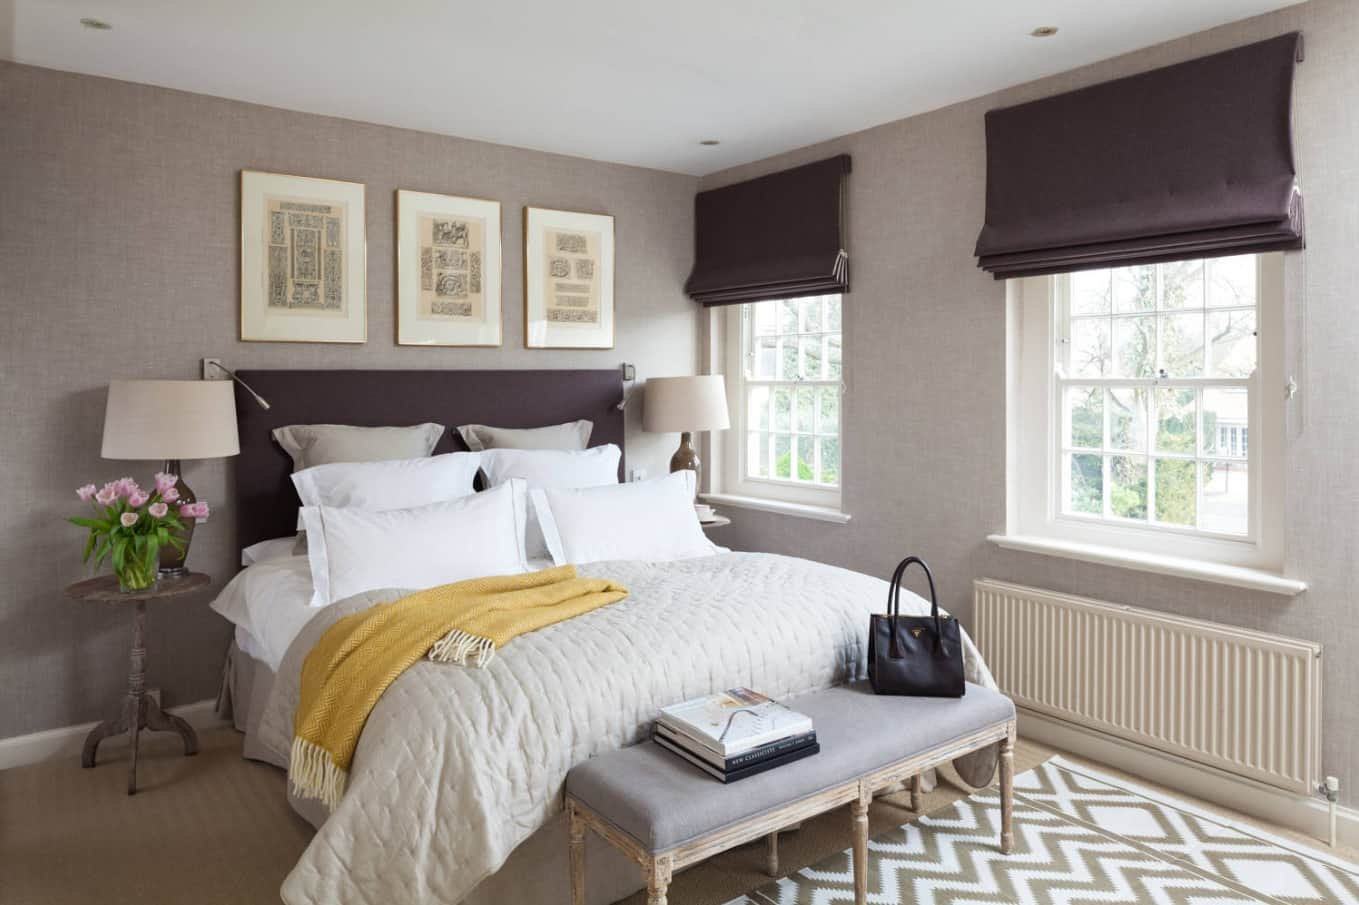 5 Bedroom Upgrades To Consider. Dark spots of the blinds and headboard